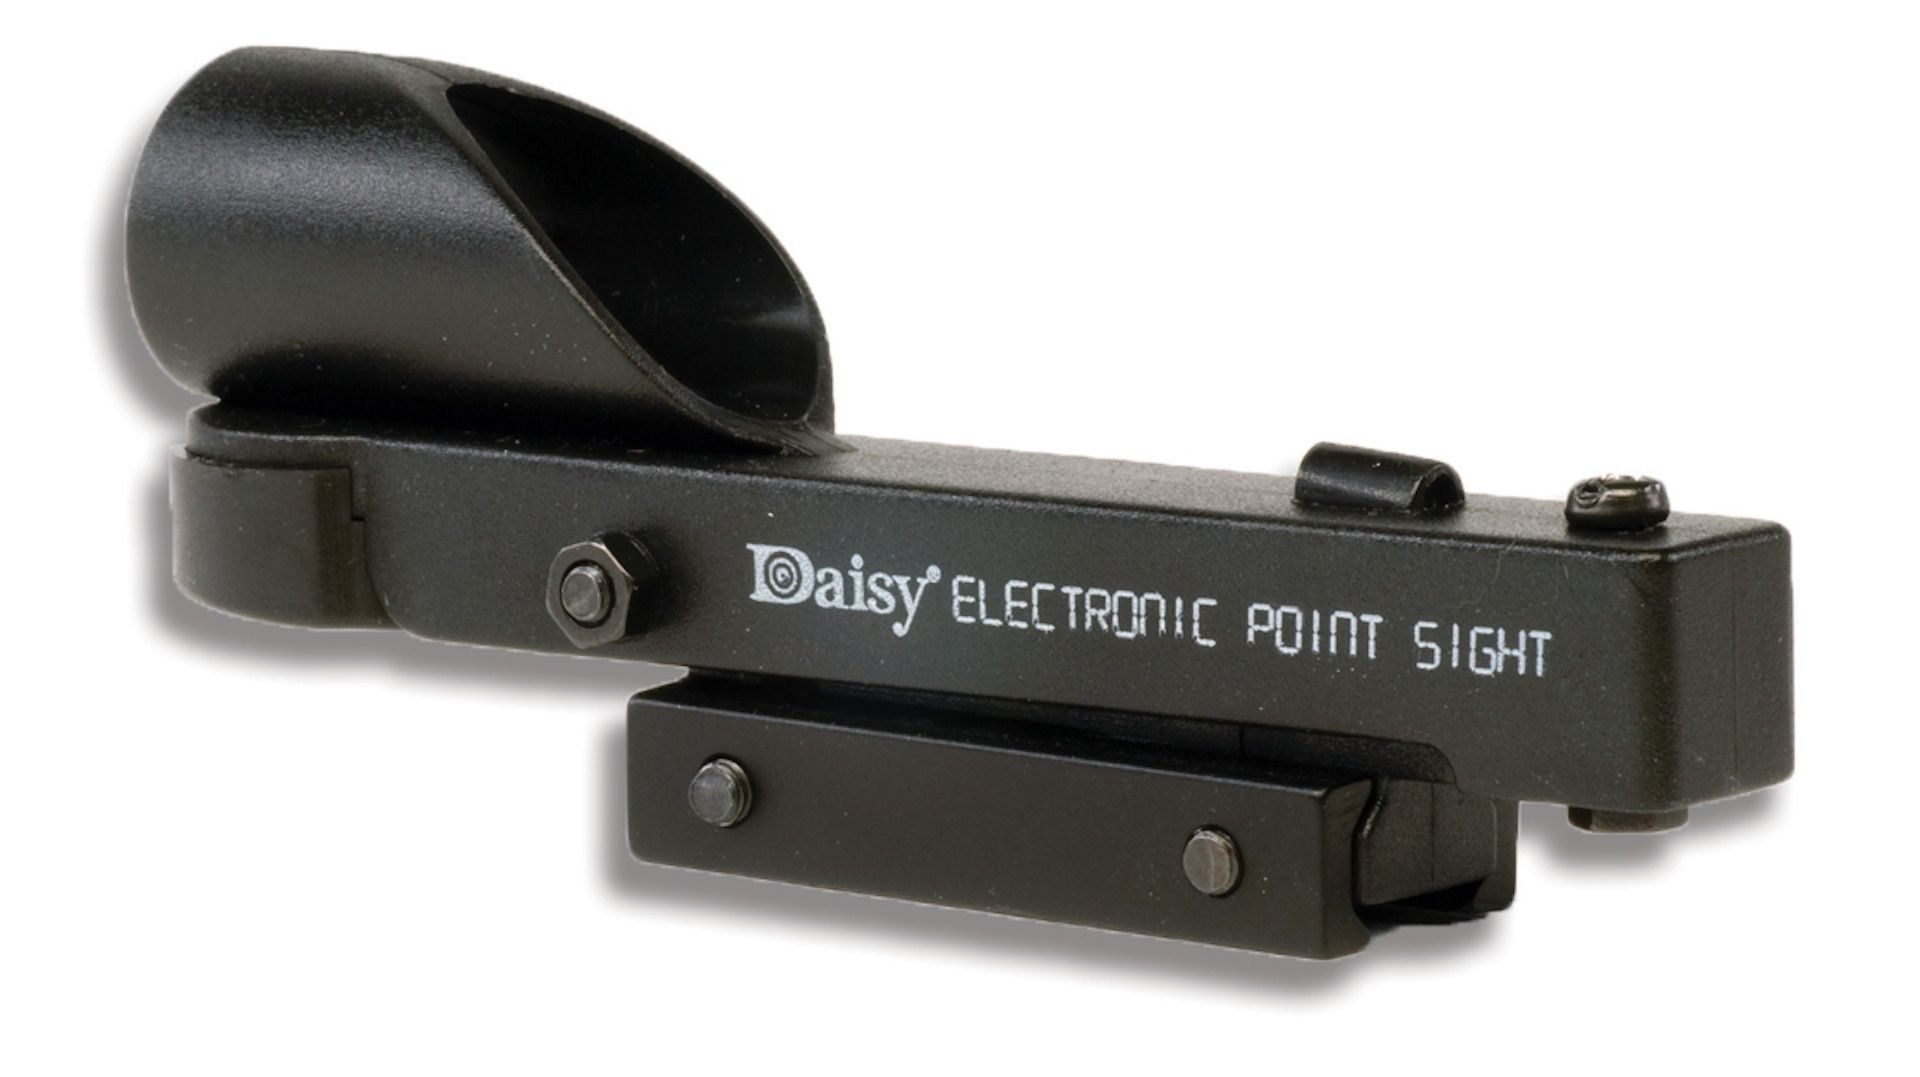 Visor con retícula iluminada Daisy Electronic Point Sight